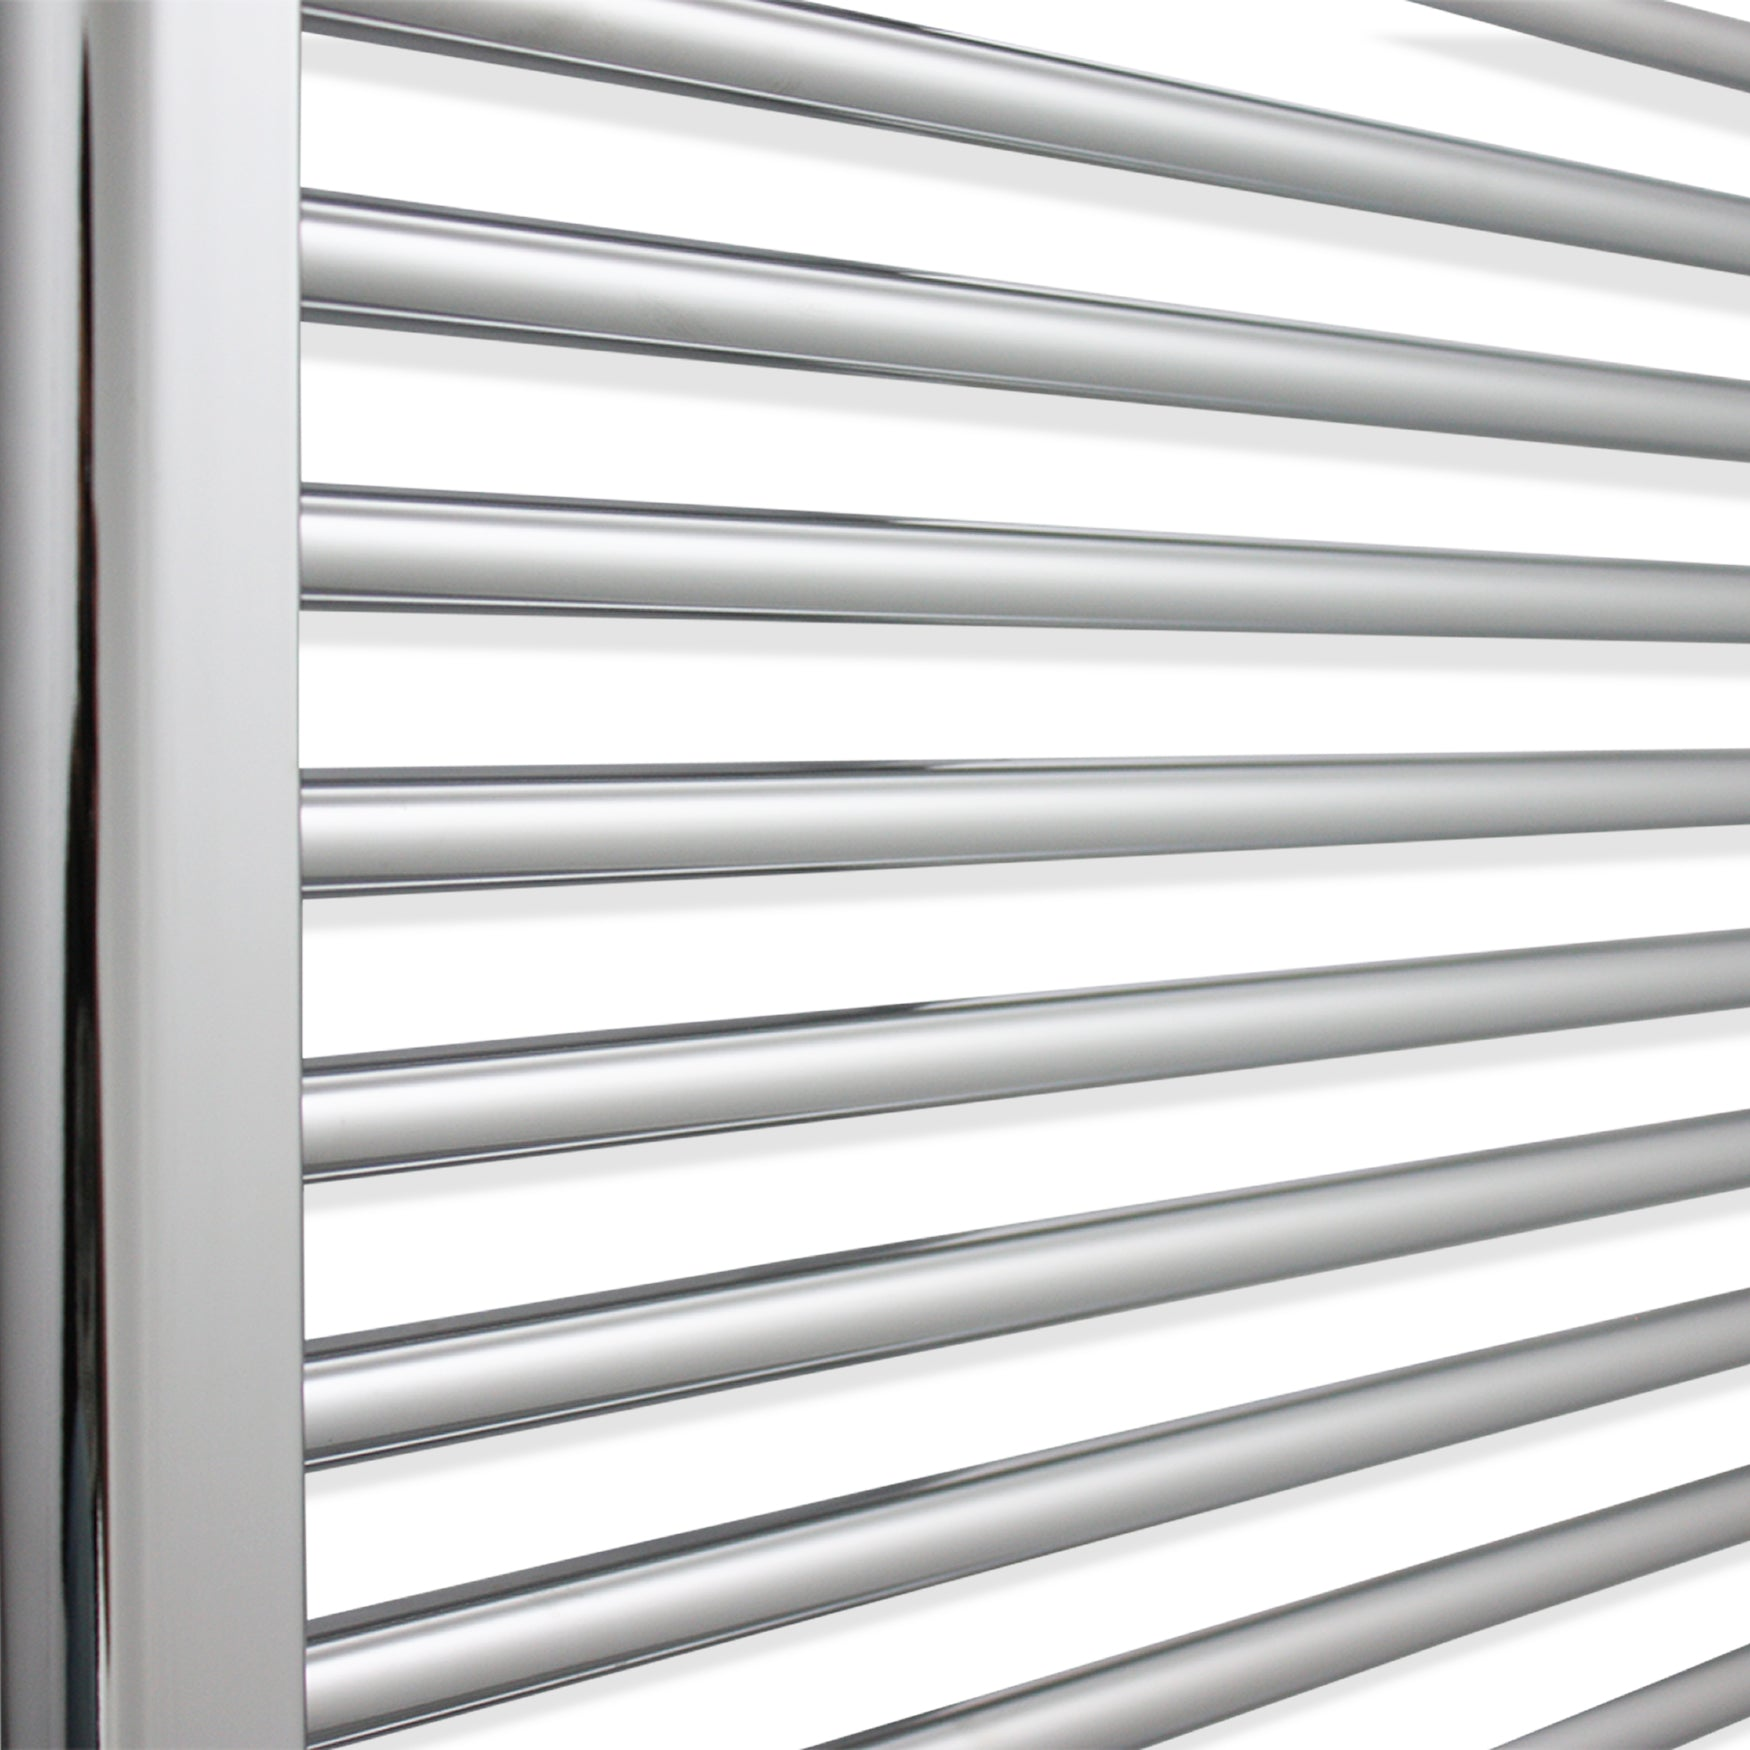 850mm Wide 1000mm High Flat Chrome Heated Towel Rail Radiator HTR